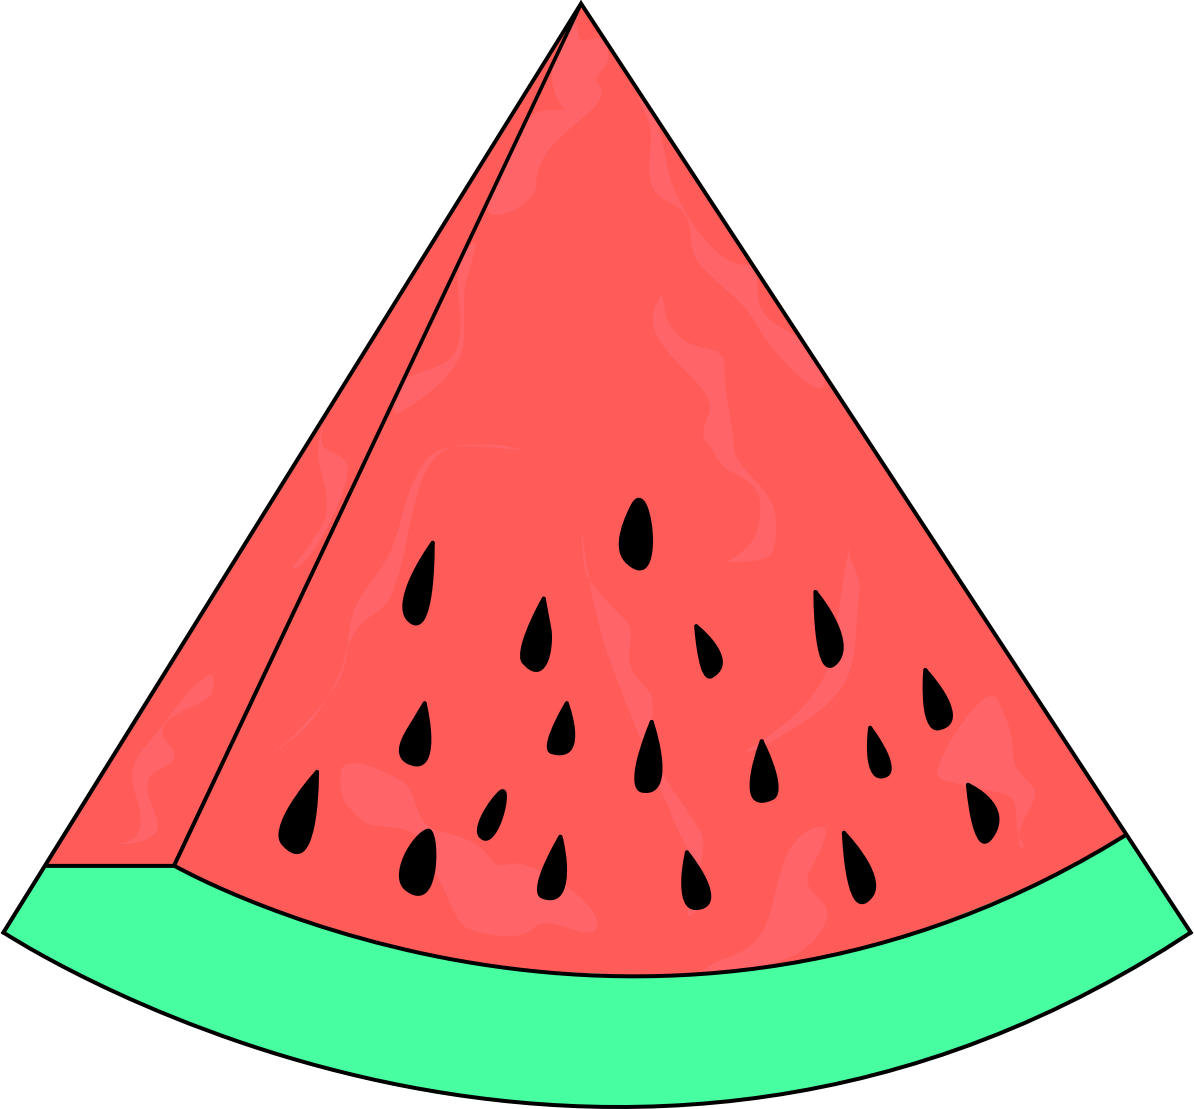 Slice sketch big image. Watermelon clipart tumbler